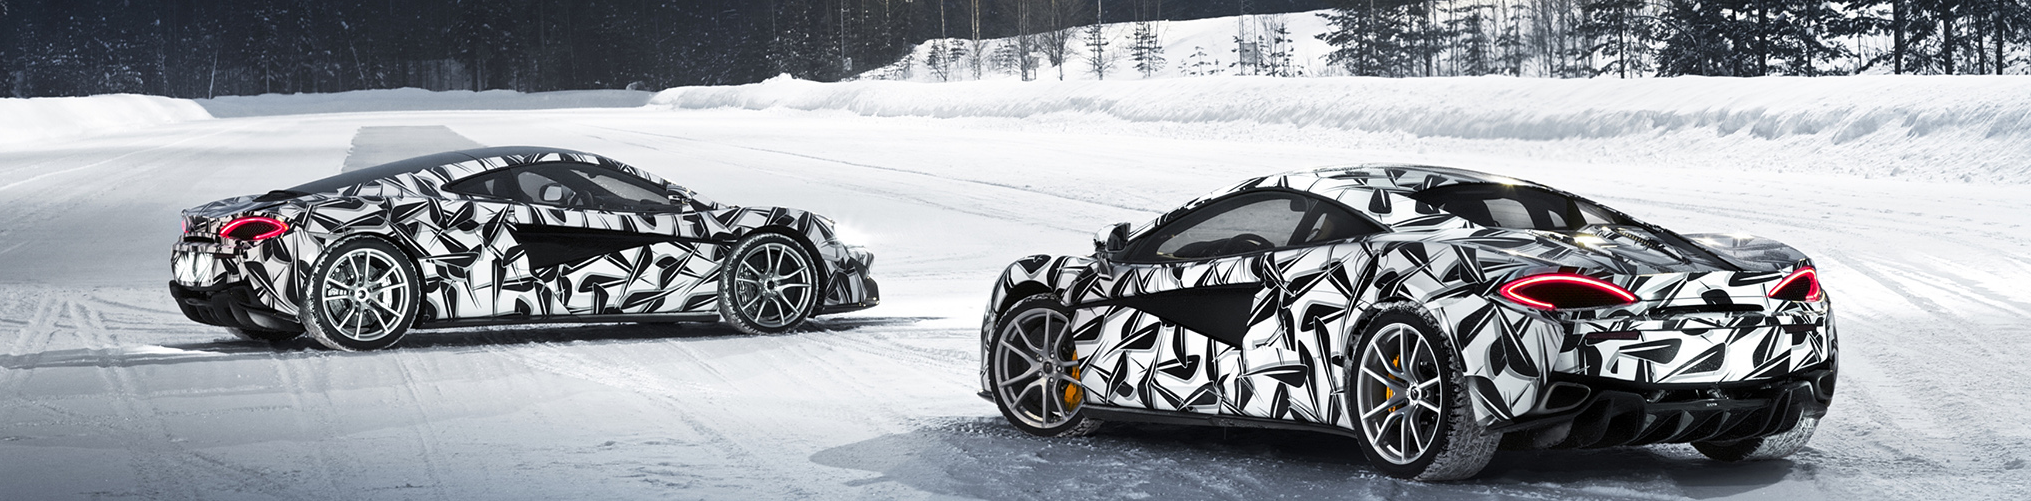 McLaren has just announced that the luxury automotive maker will follow in the footsteps of their competition with the inaugural McLaren Ice Driving Experience to take place in Lvalo, Finland January 15th to Feb 3rd. Guest will learn all of the tricks required to master driving in arctic conditions from some of the world's top talent and enjoy all of the other cold weather festivities that Finland has to offer such as a Husky safari and snow mobile racing.